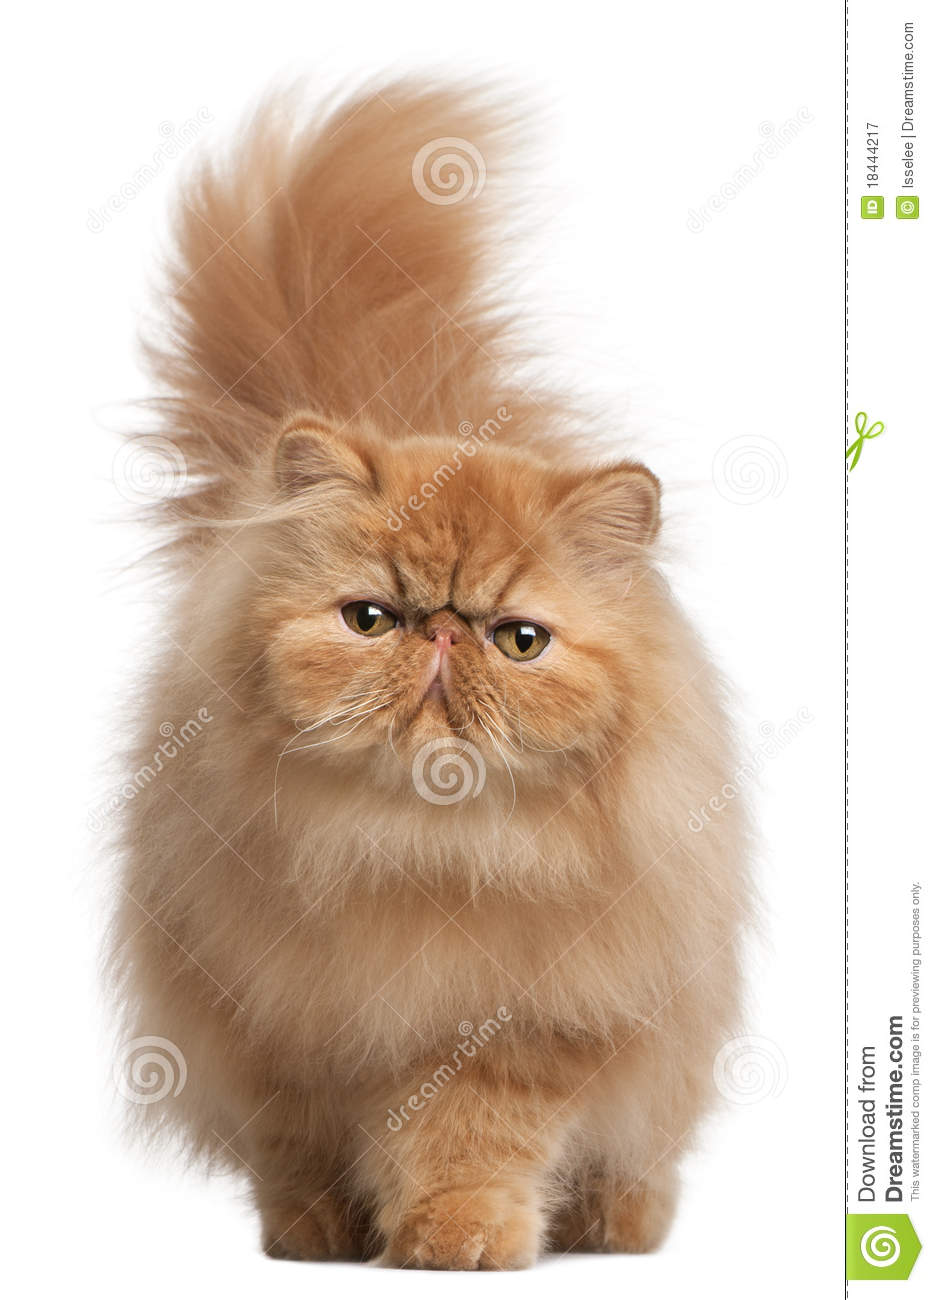 6 Month Old Kitten Weight http://www.dreamstime.com/royalty-free-stock-photography-persian-kitten-6-months-old-image18444217